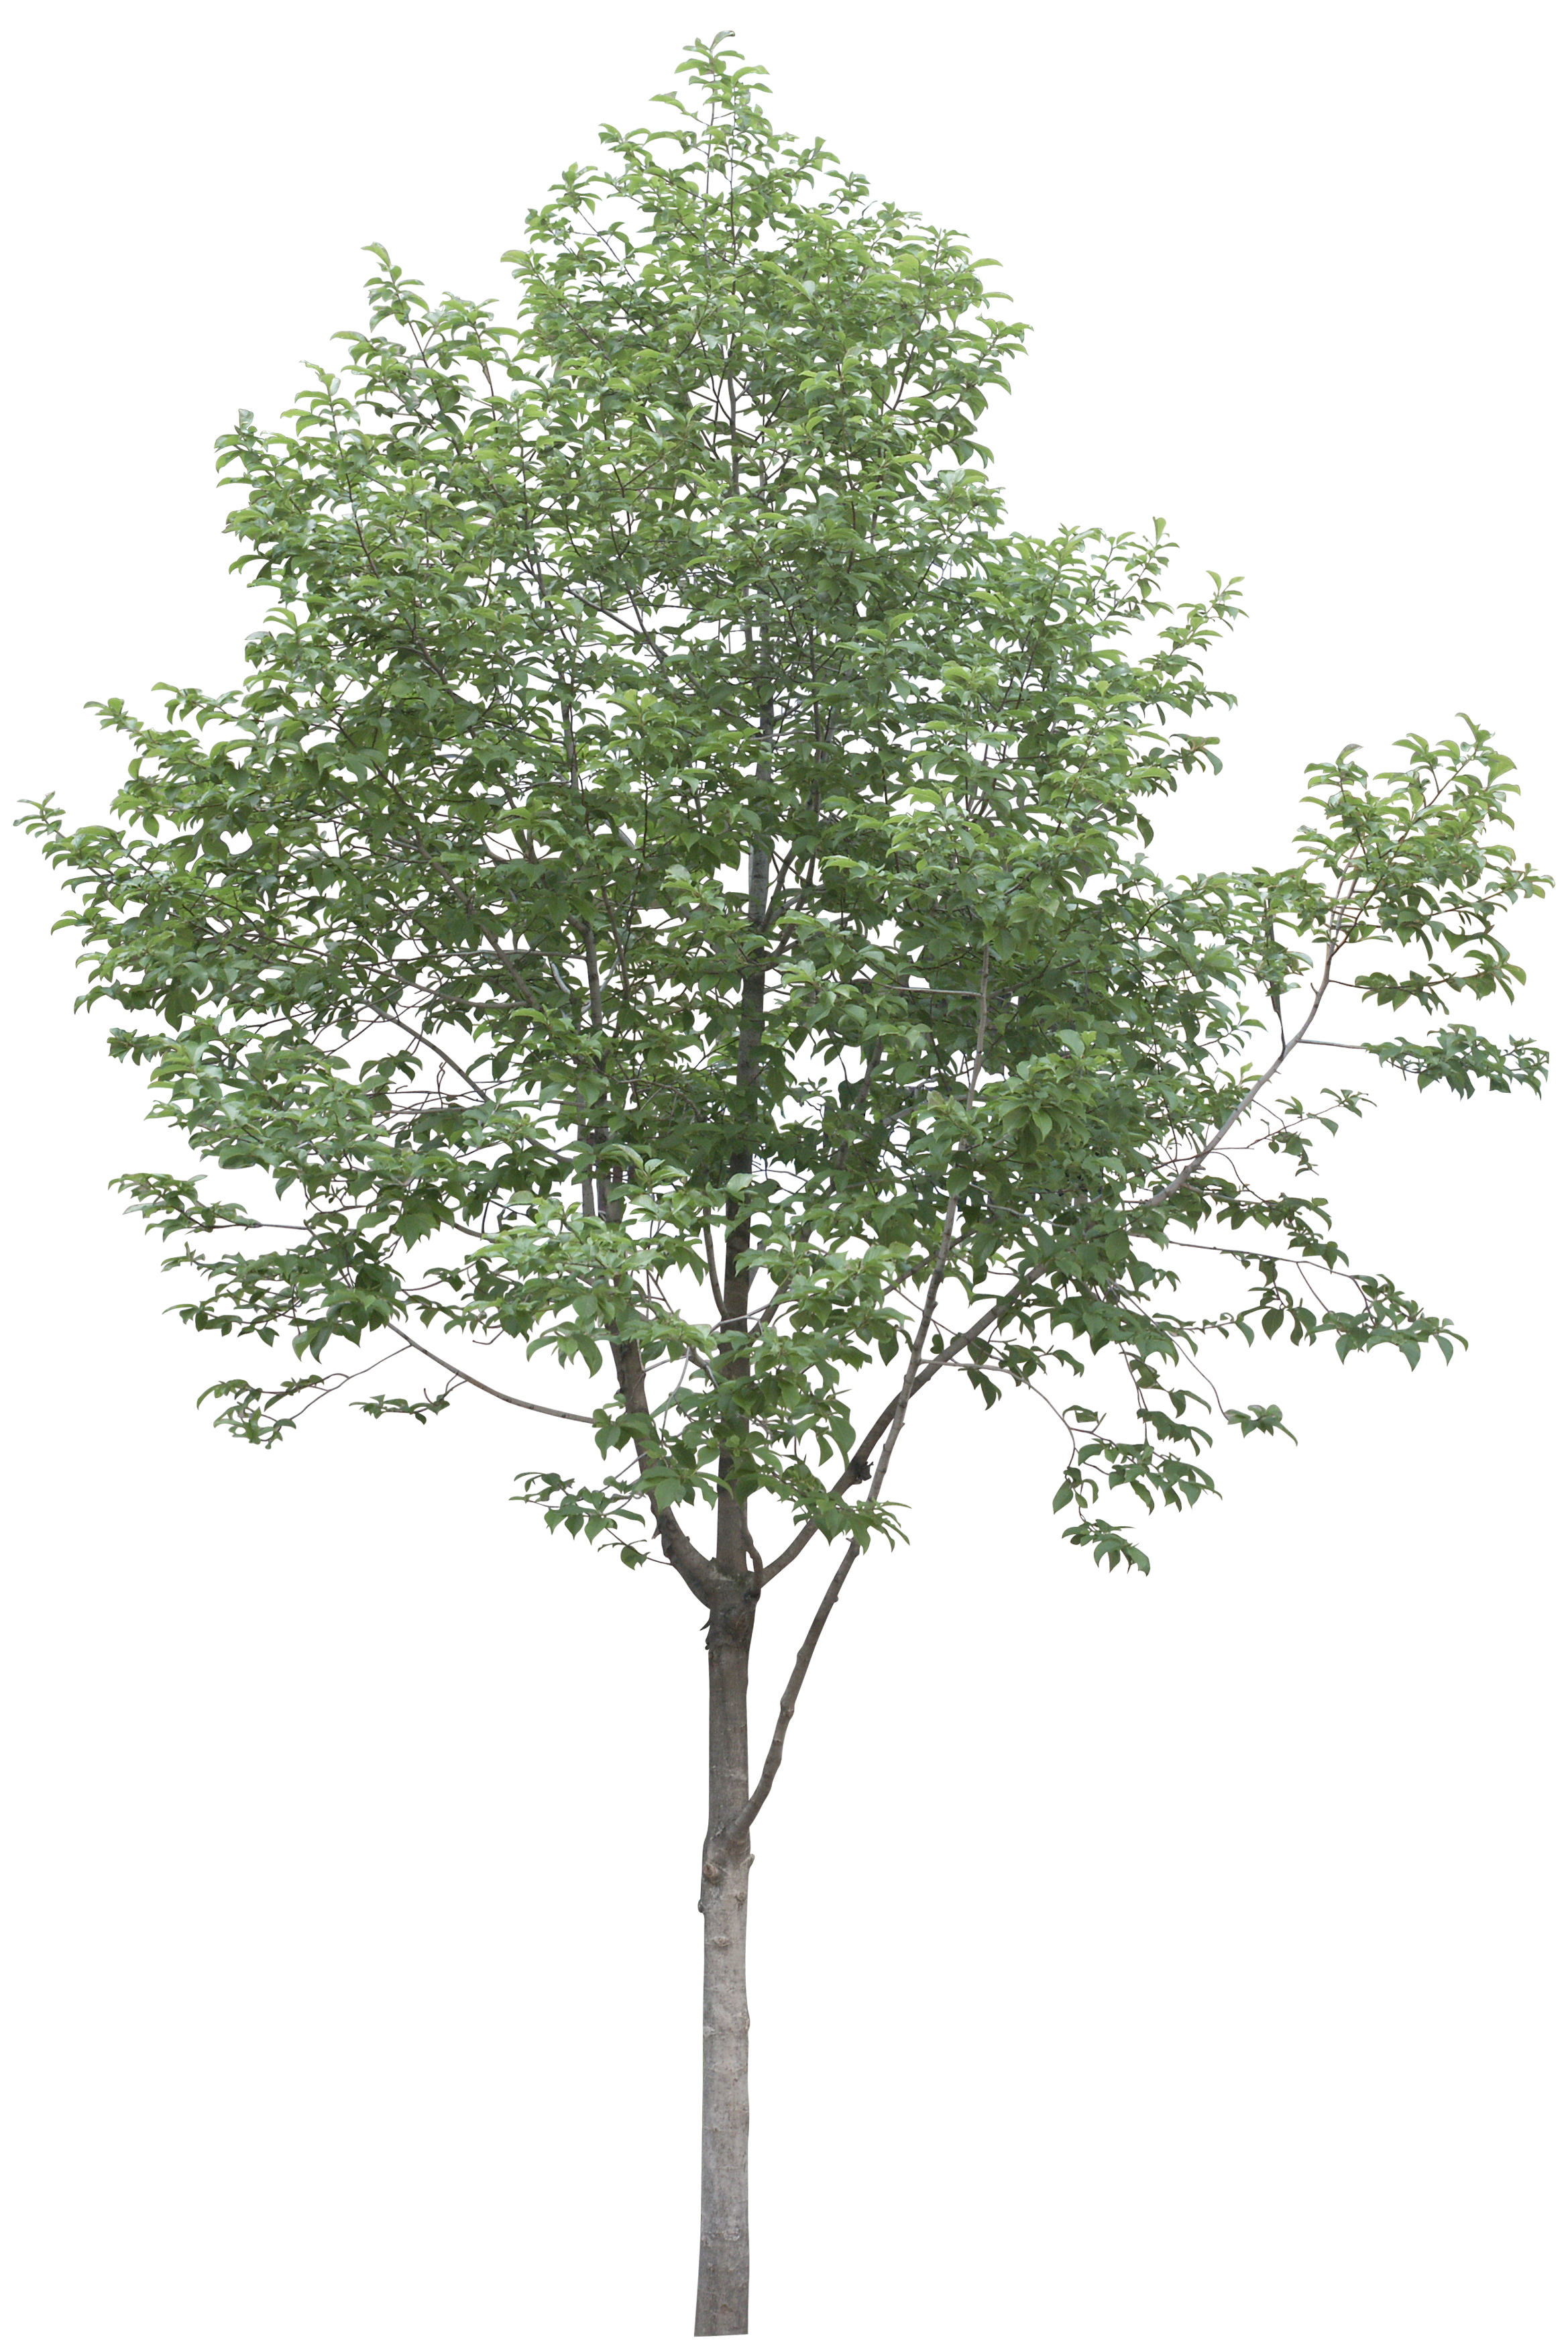 Arboles png photoshop. Image result for resources